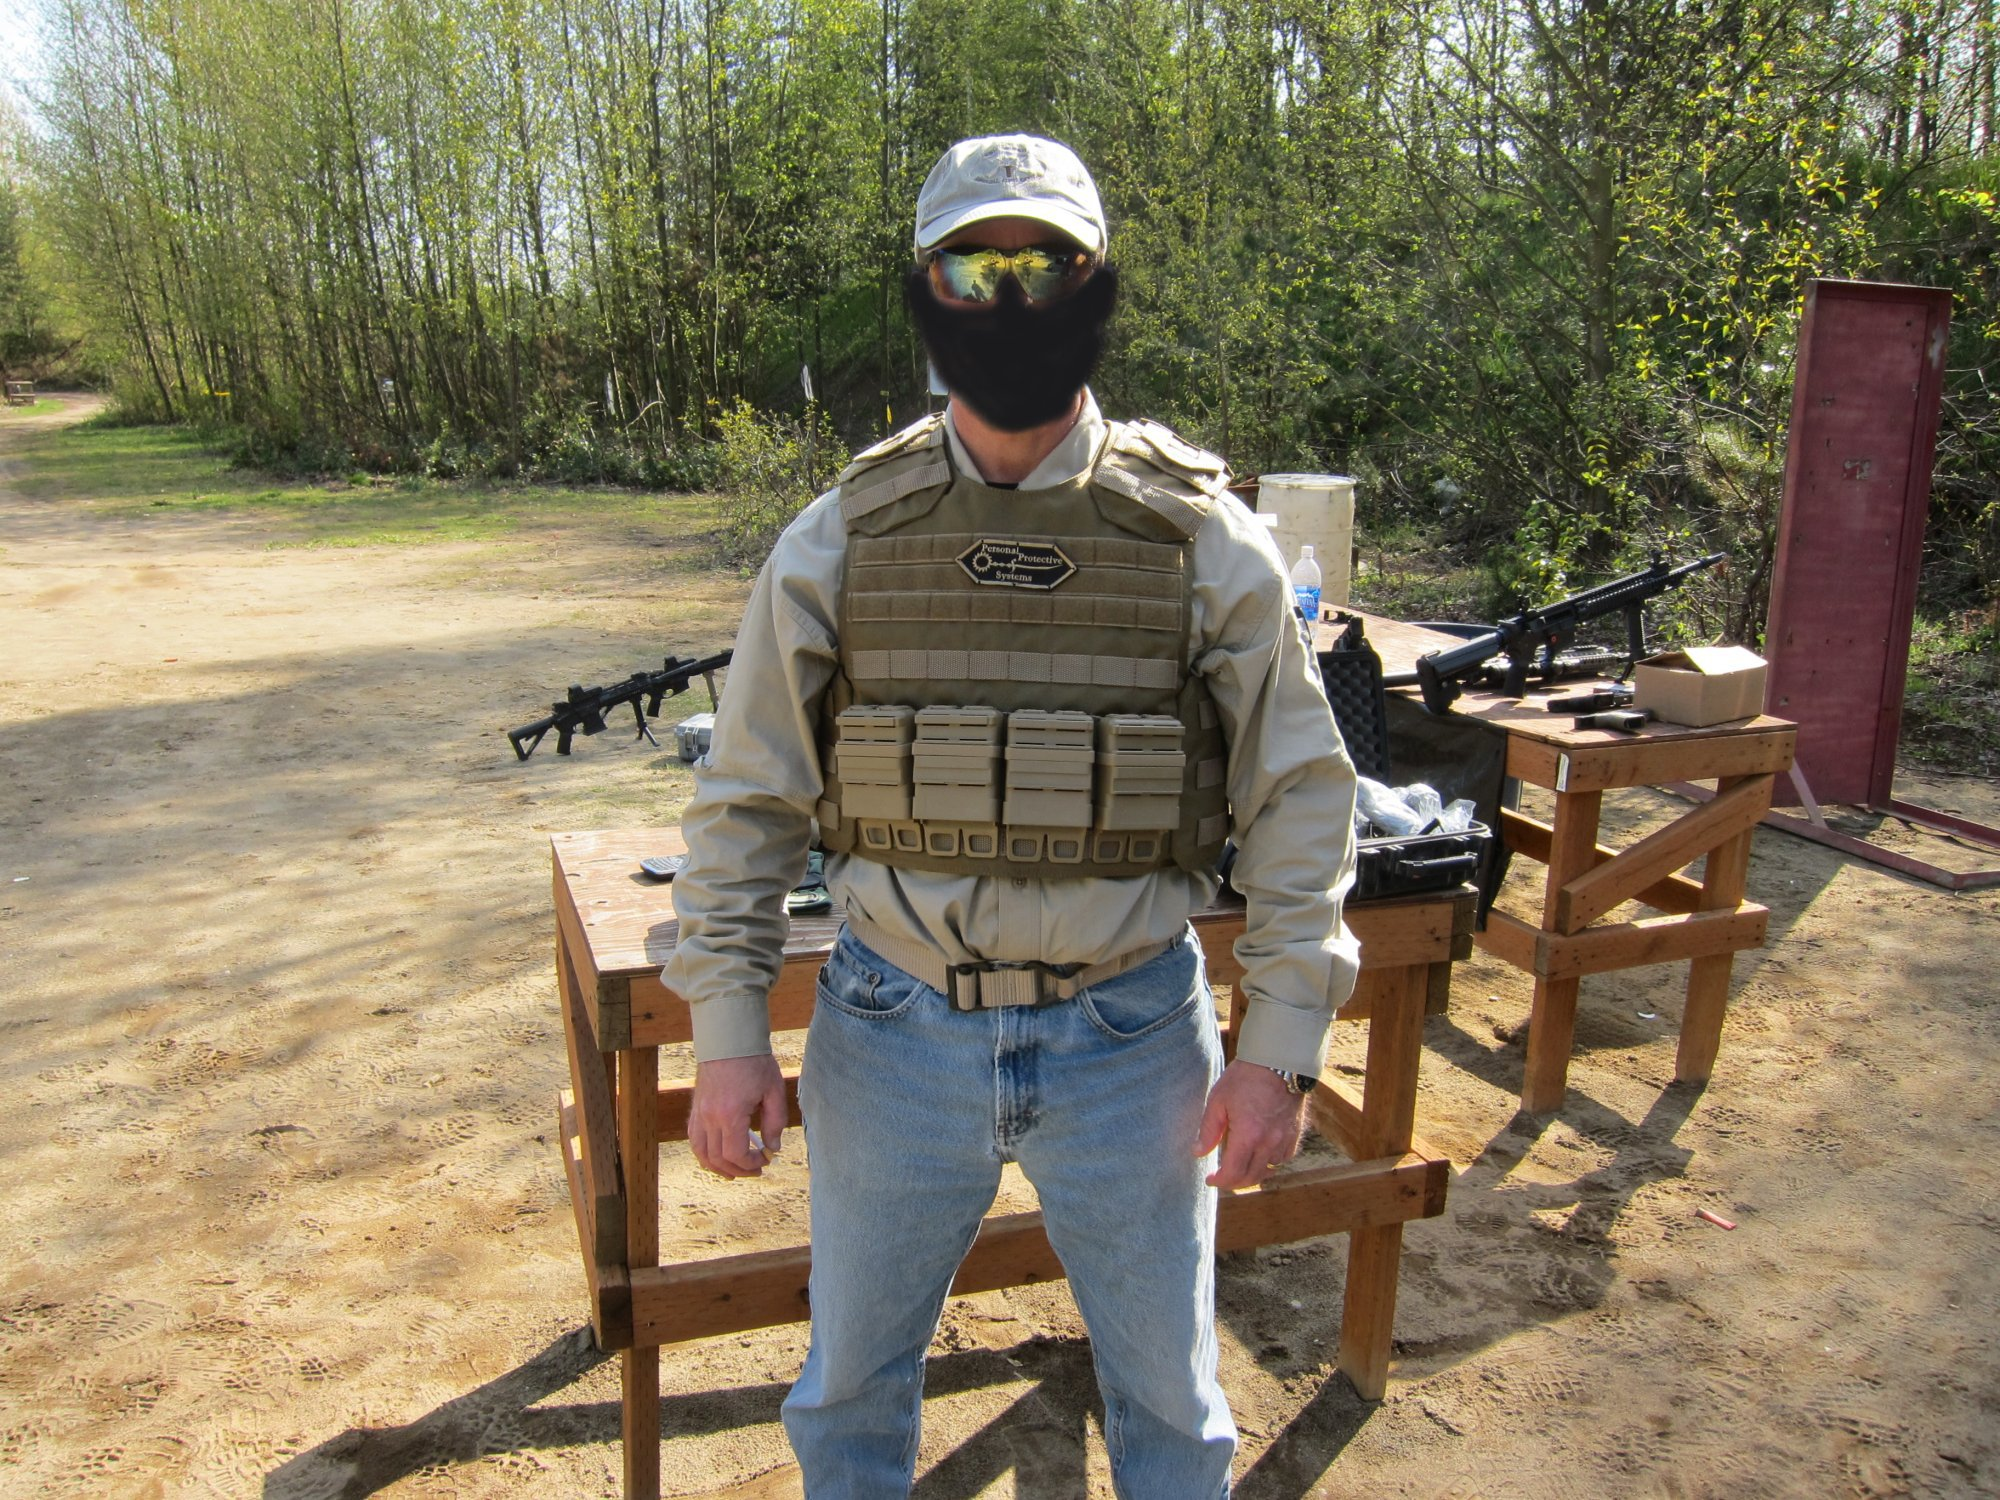 P2 Systems Cohort I Tactical Armor Carrier RTT 3 <!  :en  >Hardpoint Equipment (formerly Personal Protective Systems, or P2 Systems) Centurion Armor Maniple I and Cohort I Tactical Body Armor Carrier Systems:  Advanced Hard Armor Plate Carrier/Tactical Vest Systems for Military Special Operations (SPECOPS), LE SWAT, and PSD Ops  (Photos & Video)<!  :  >